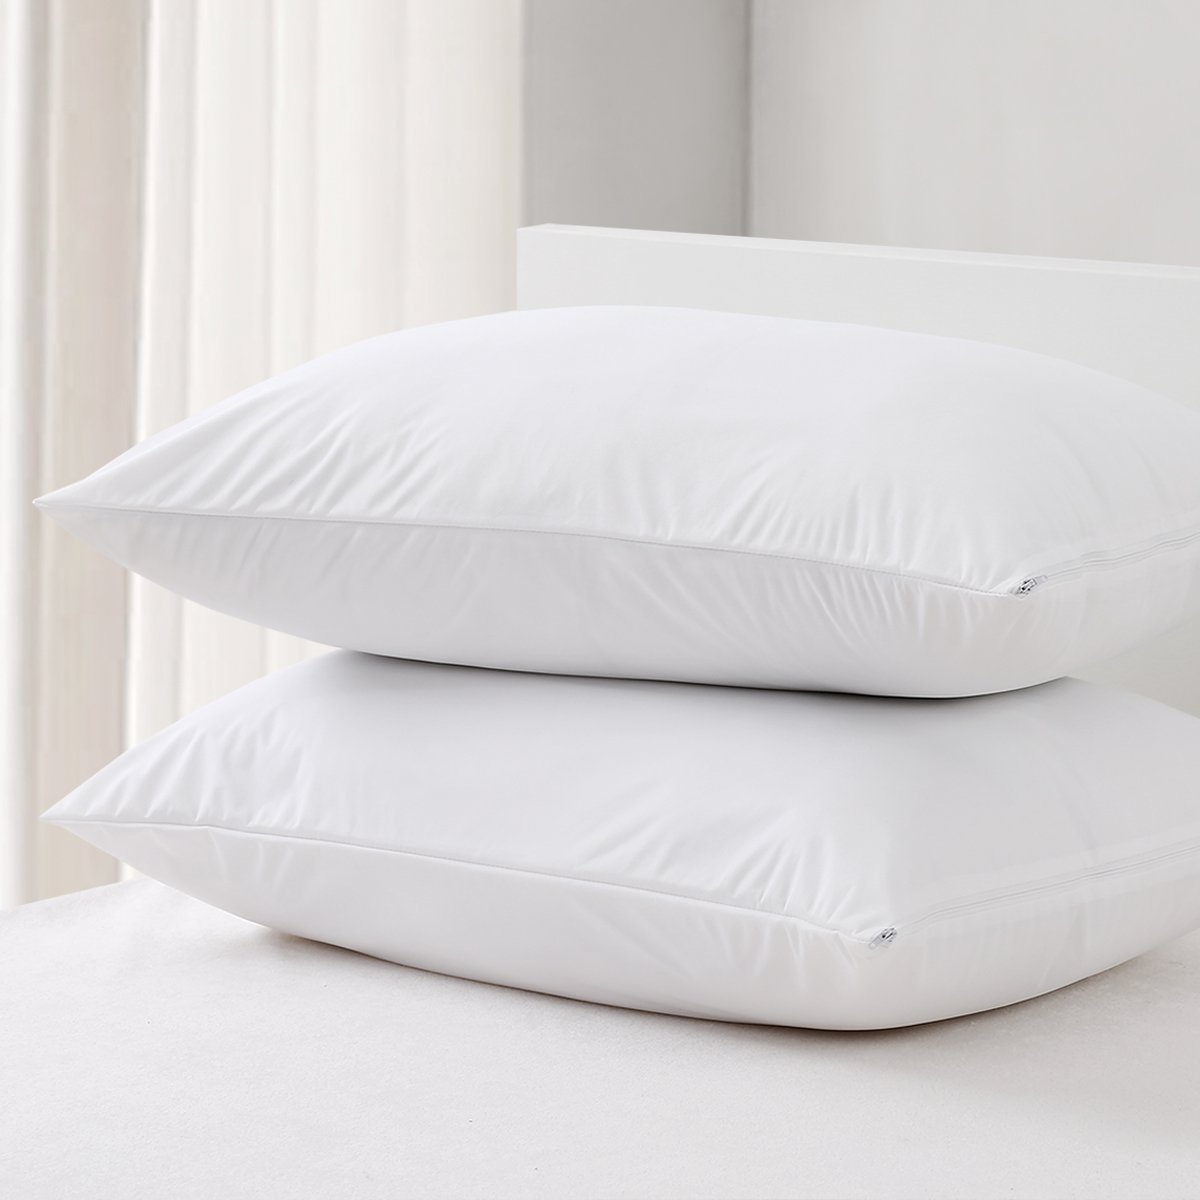 MZXcuin 100% Waterproof Pillow Protectors, [2 Pieces] Premium Bedding Dust Mite Bug Resistant Pillowcase, Hypoallergenic Zippered Pillow Covers Encasement (White, King 20'' x 36'')